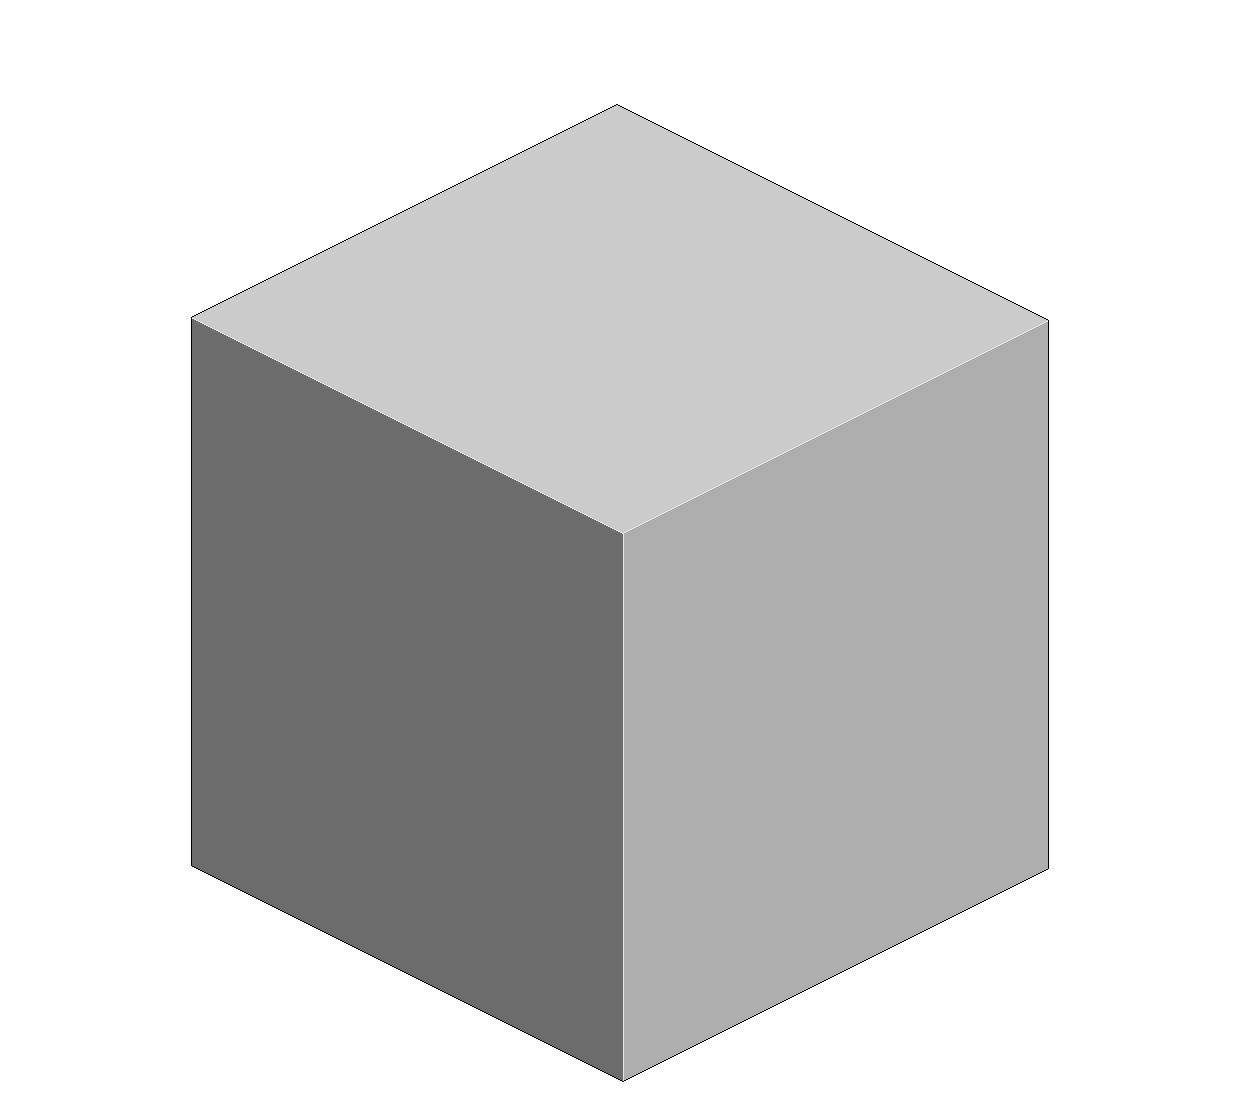 Cube Hd PNG Image